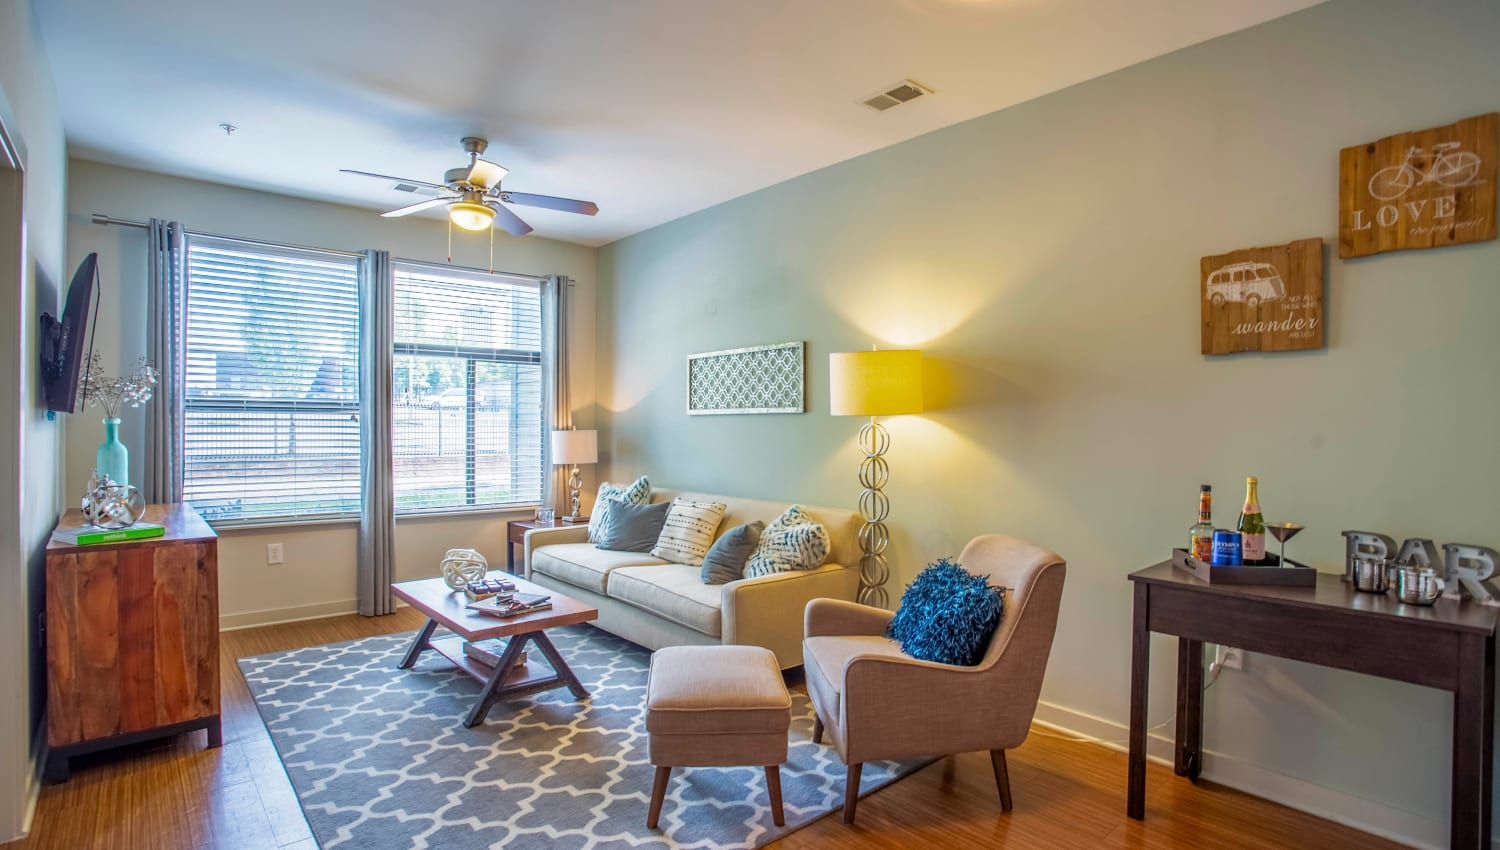 Ceiling fan and large bay windows in a model home's living area at Olympus Midtown in Nashville, Tennessee